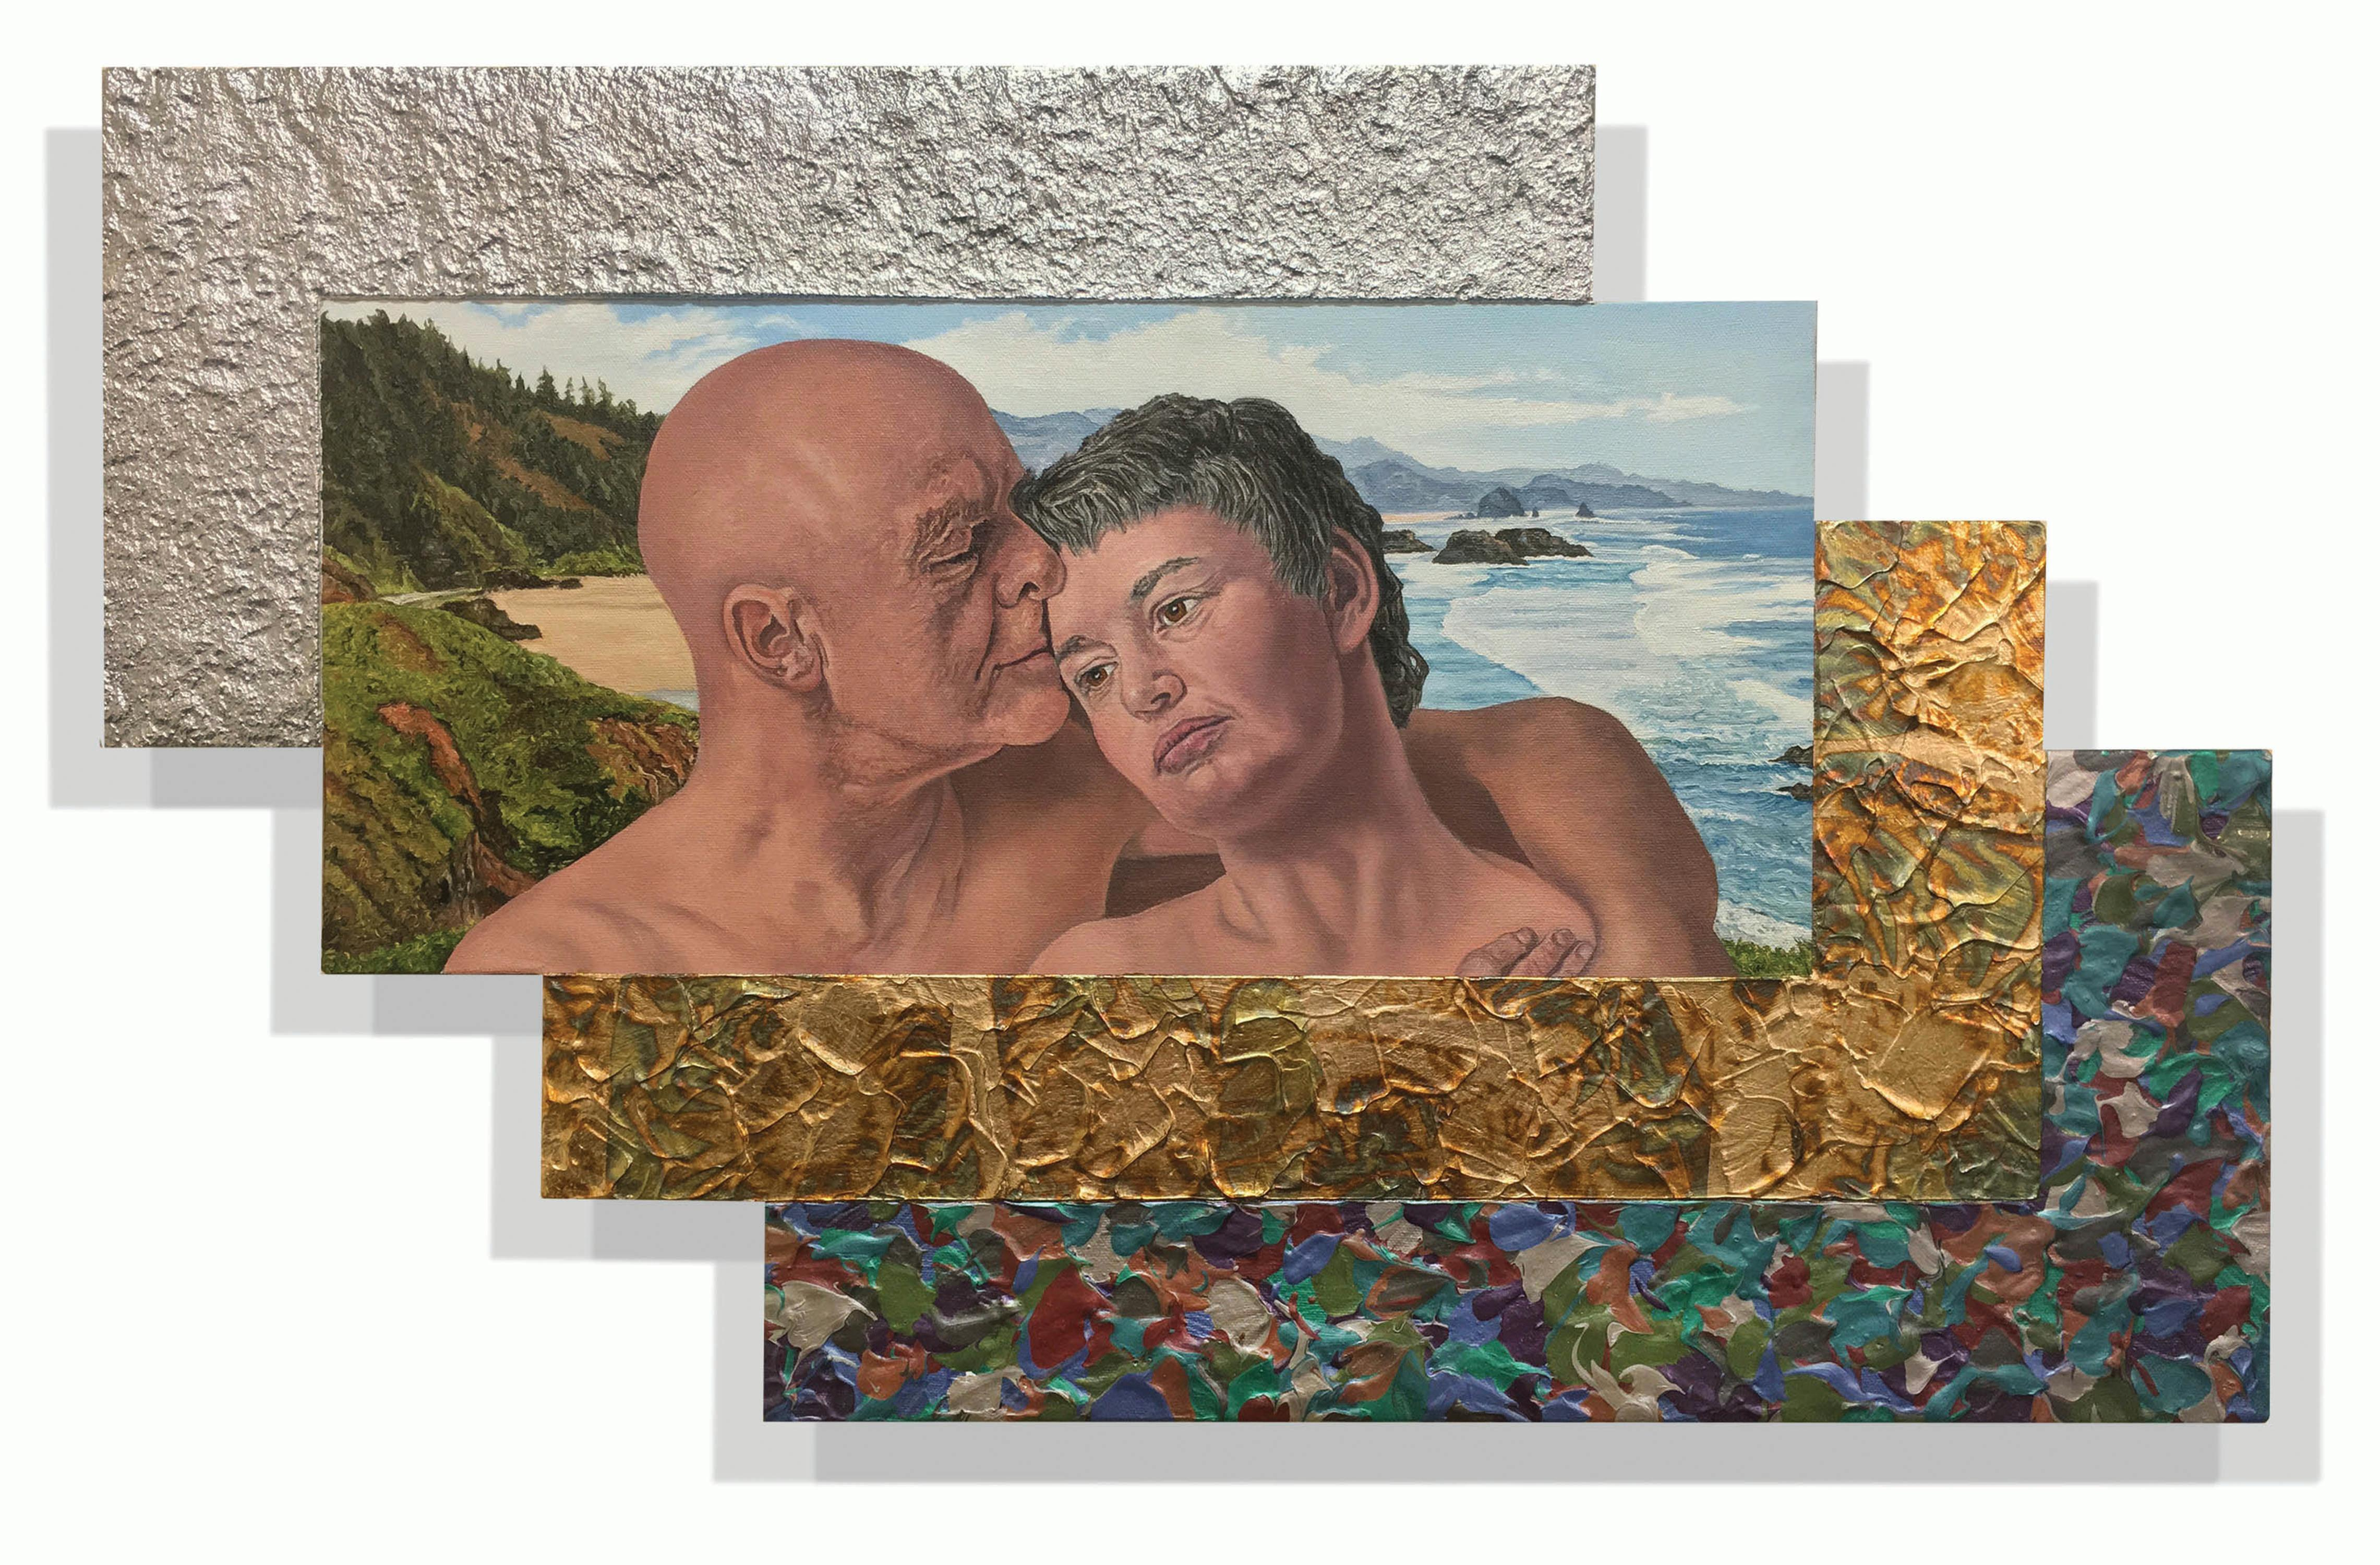 Jack Reilly, Two Perfect Souls in a Perfect Place and Time, Mixed Media,2018